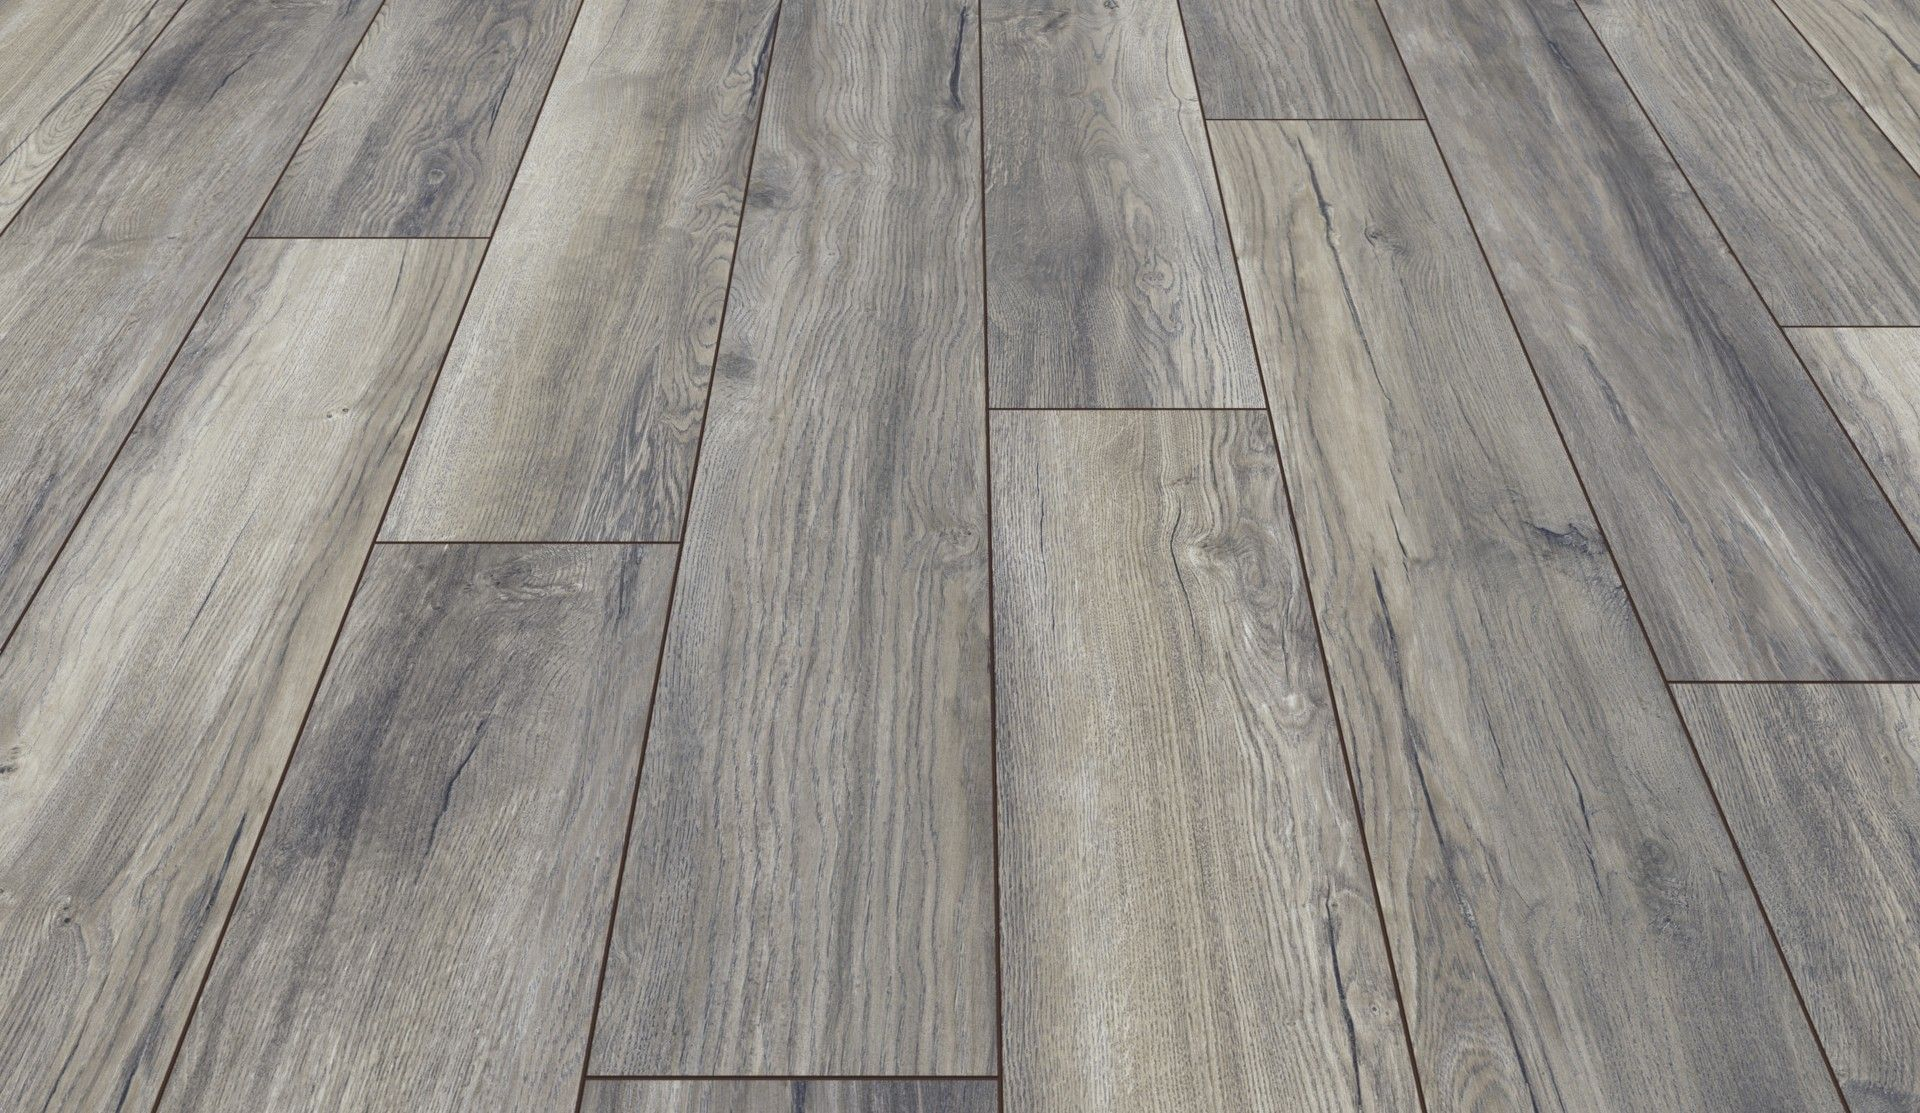 Swiss Krono Villa 4v 12mm Harbour Oak Grey M1204 Ac5 Laminate Flooring Swiss Krono Villa 4v 12mm Ac5 By Range Flooring Grey Wood Floors Flooring Store